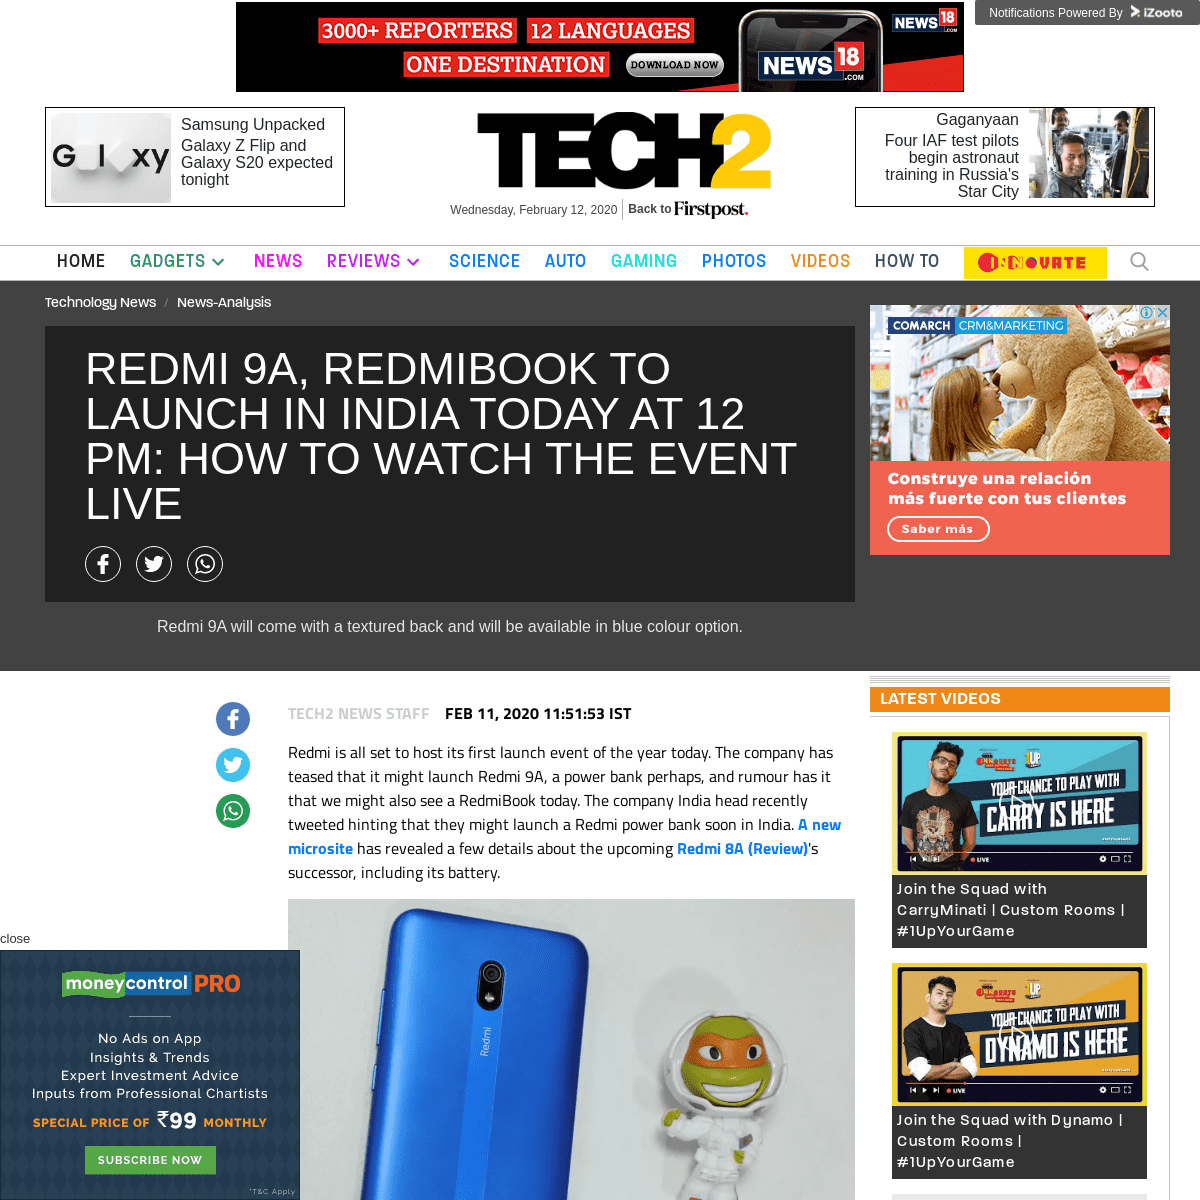 ArchiveBay.com - www.firstpost.com/tech/news-analysis/redmi-9a-redmibook-to-launch-in-india-today-at-12-pm-how-to-watch-the-event-live-8028671.html - Redmi 9A, RedmiBook to launch in India today at 12 pm- How to watch the event live- Technology News, Firstpost